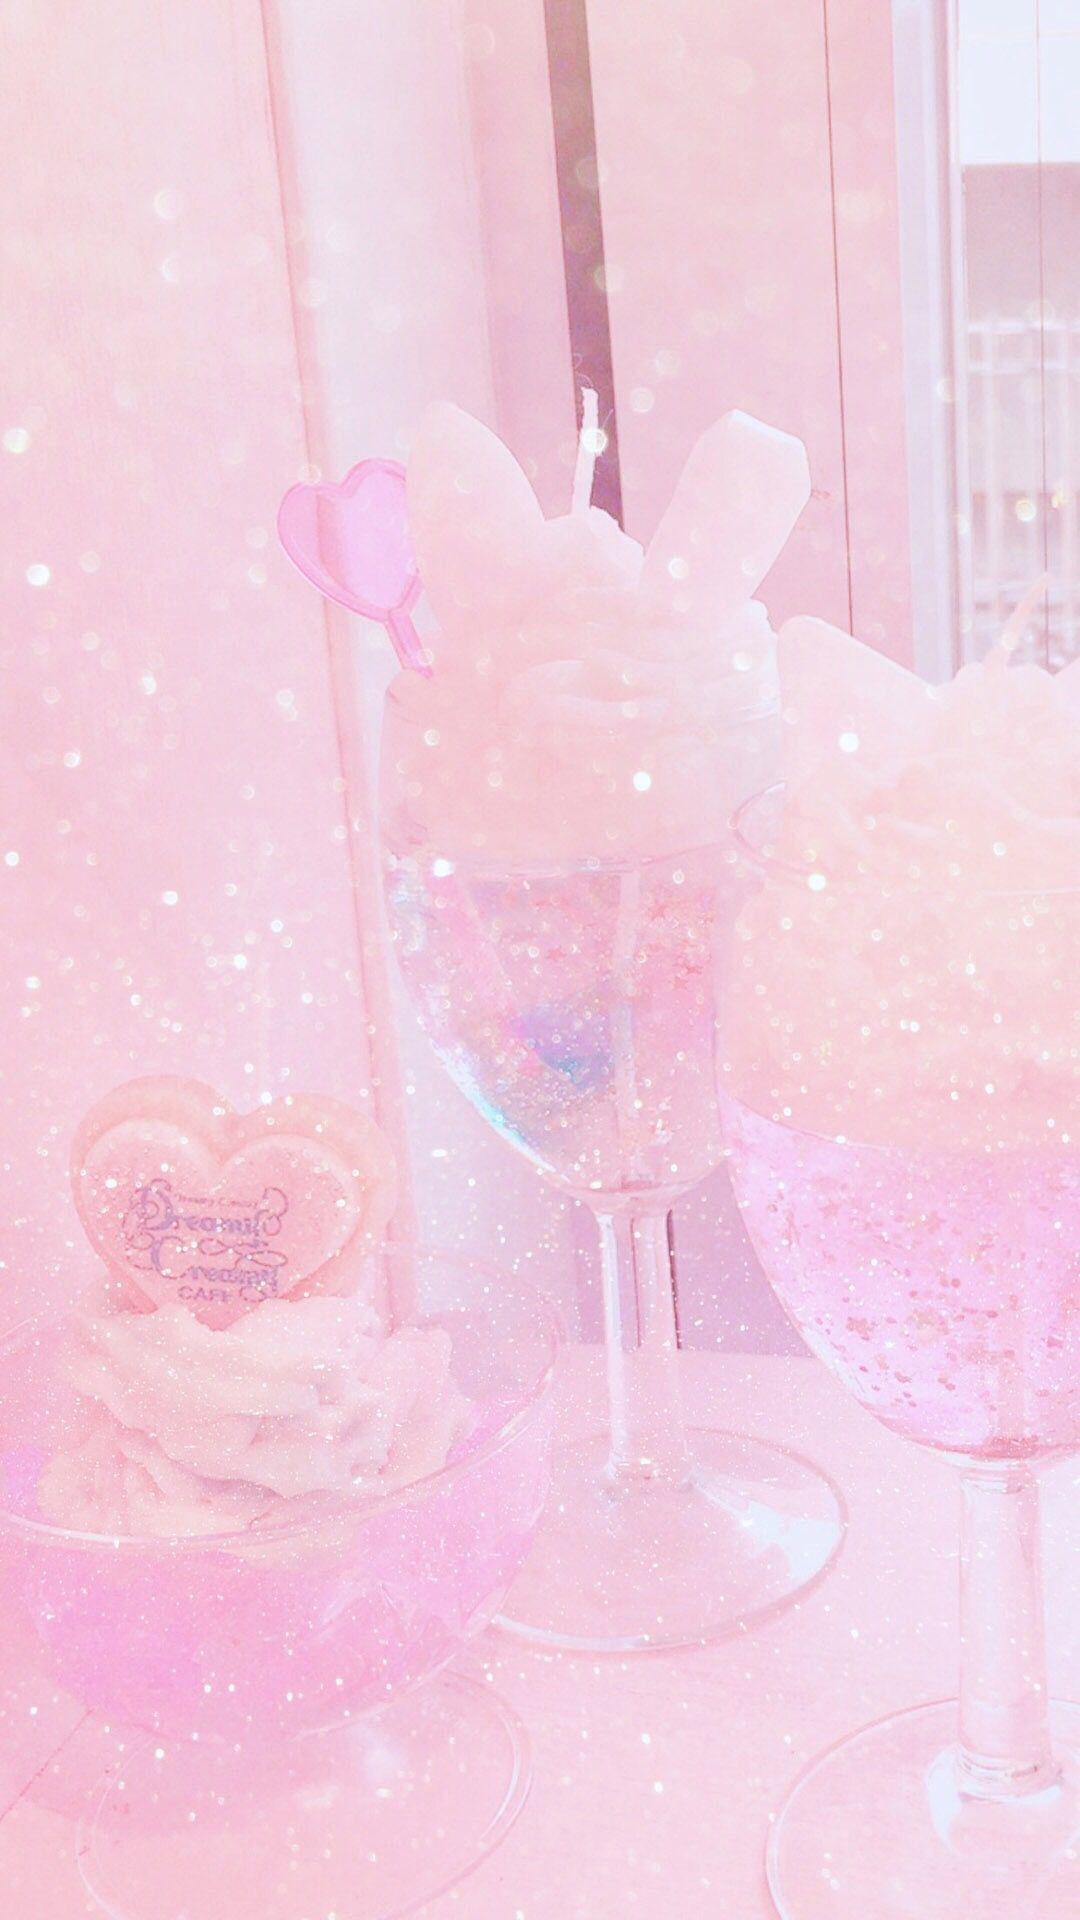 Cute Pastel Pink Aesthetic Wallpapers Wallpaper Cave